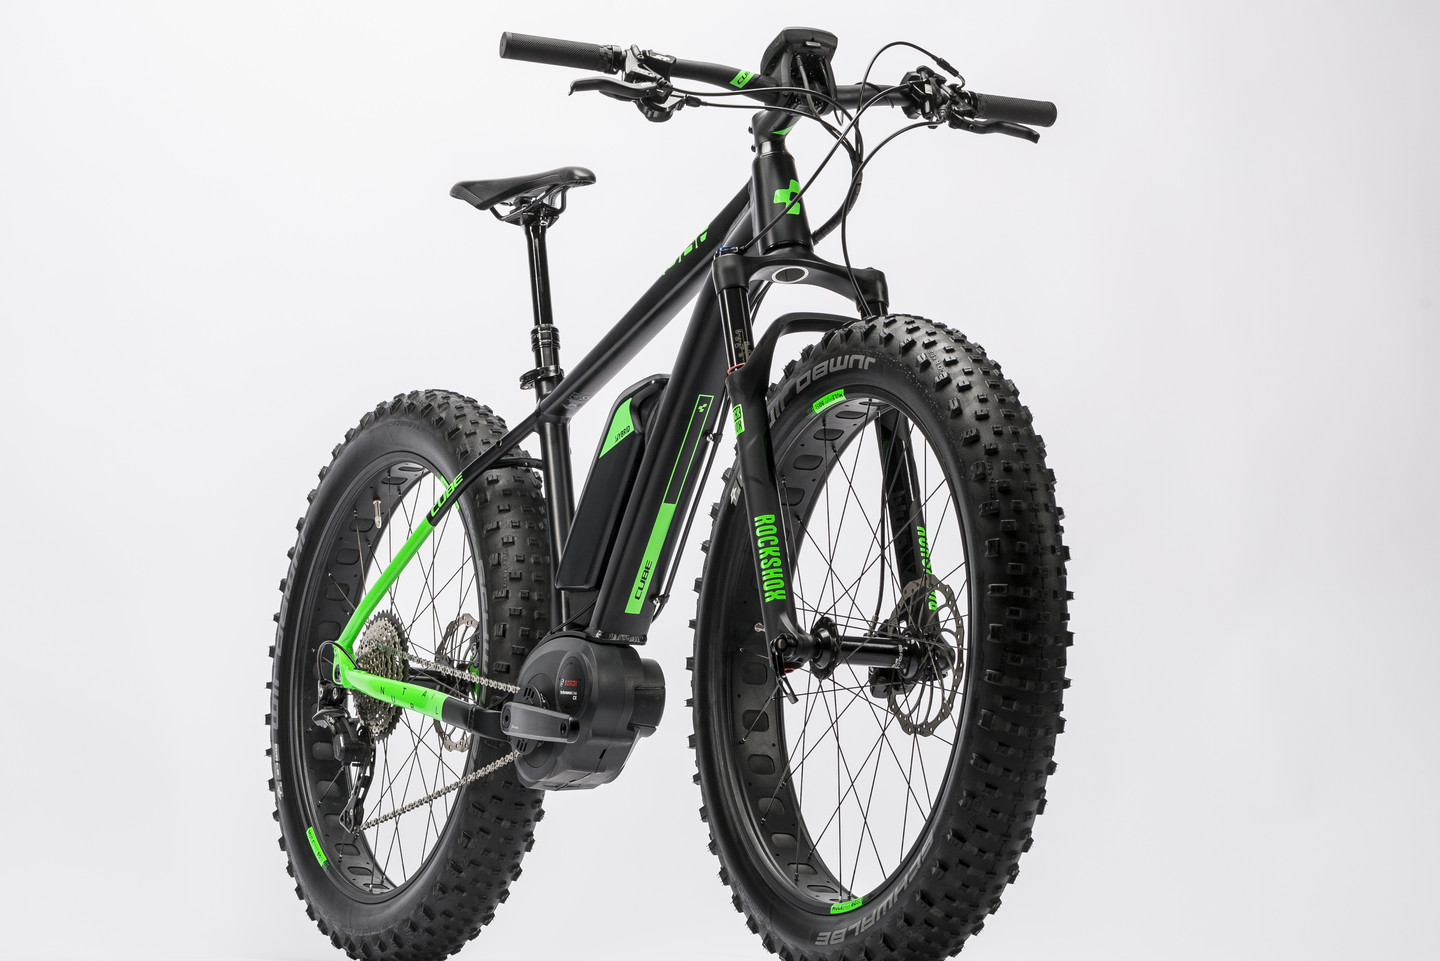 cube nutrail hybrid 2016 fatbike e bike. Black Bedroom Furniture Sets. Home Design Ideas